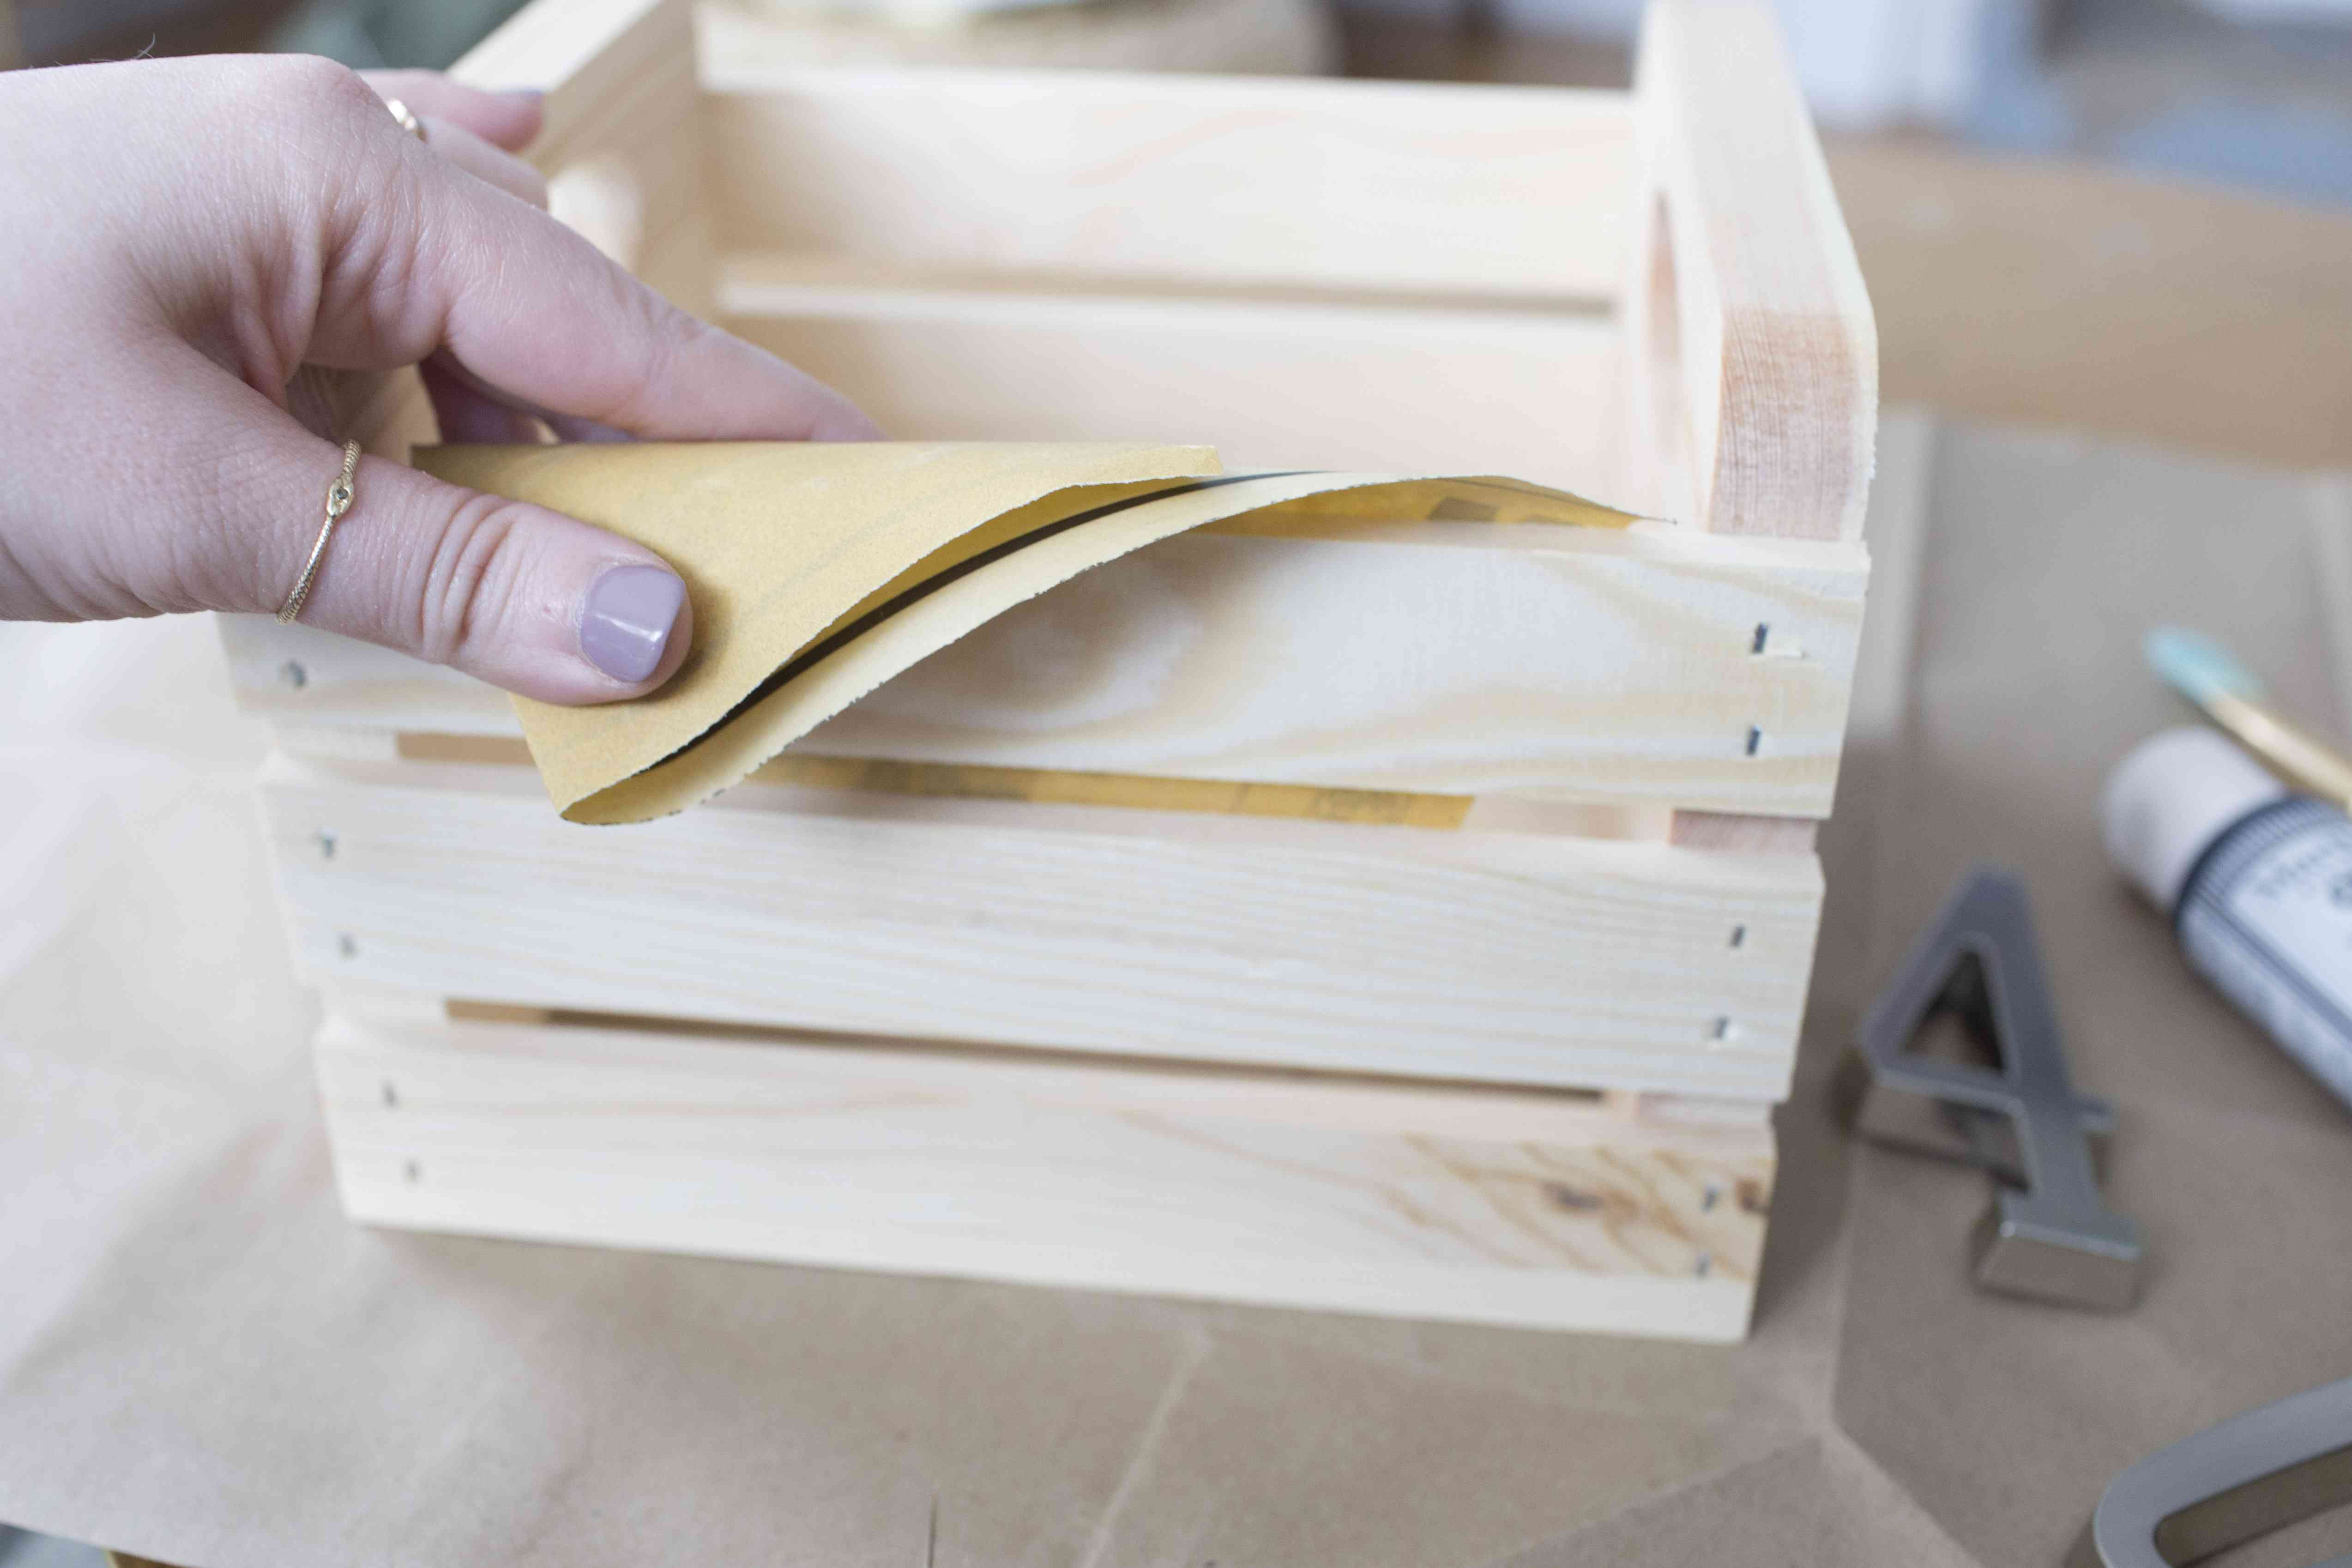 A hand sanding down a small wooden crate